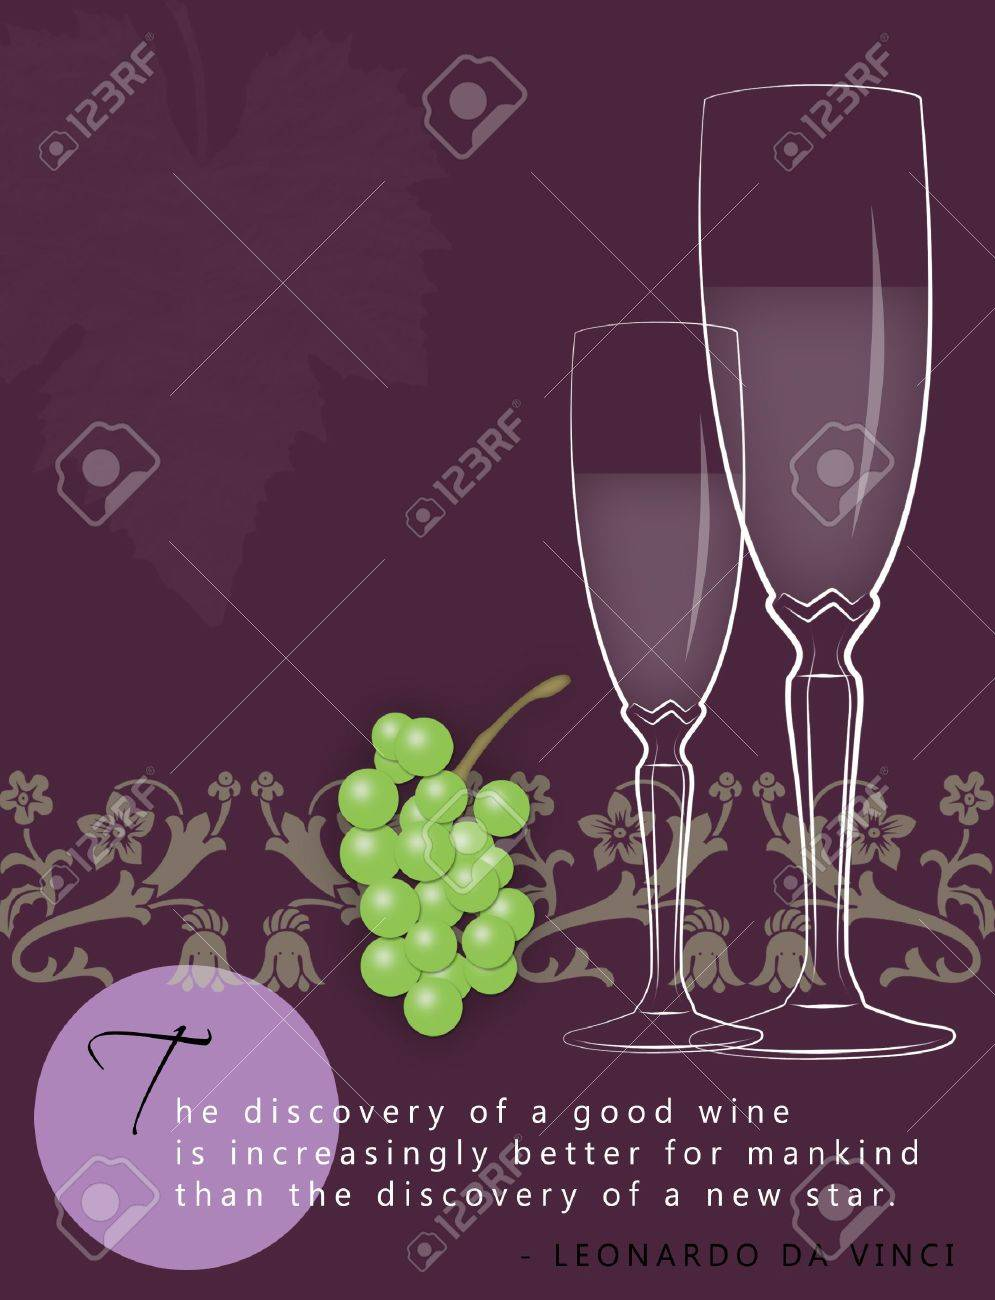 Template for winery ad with space for text. - 8143193